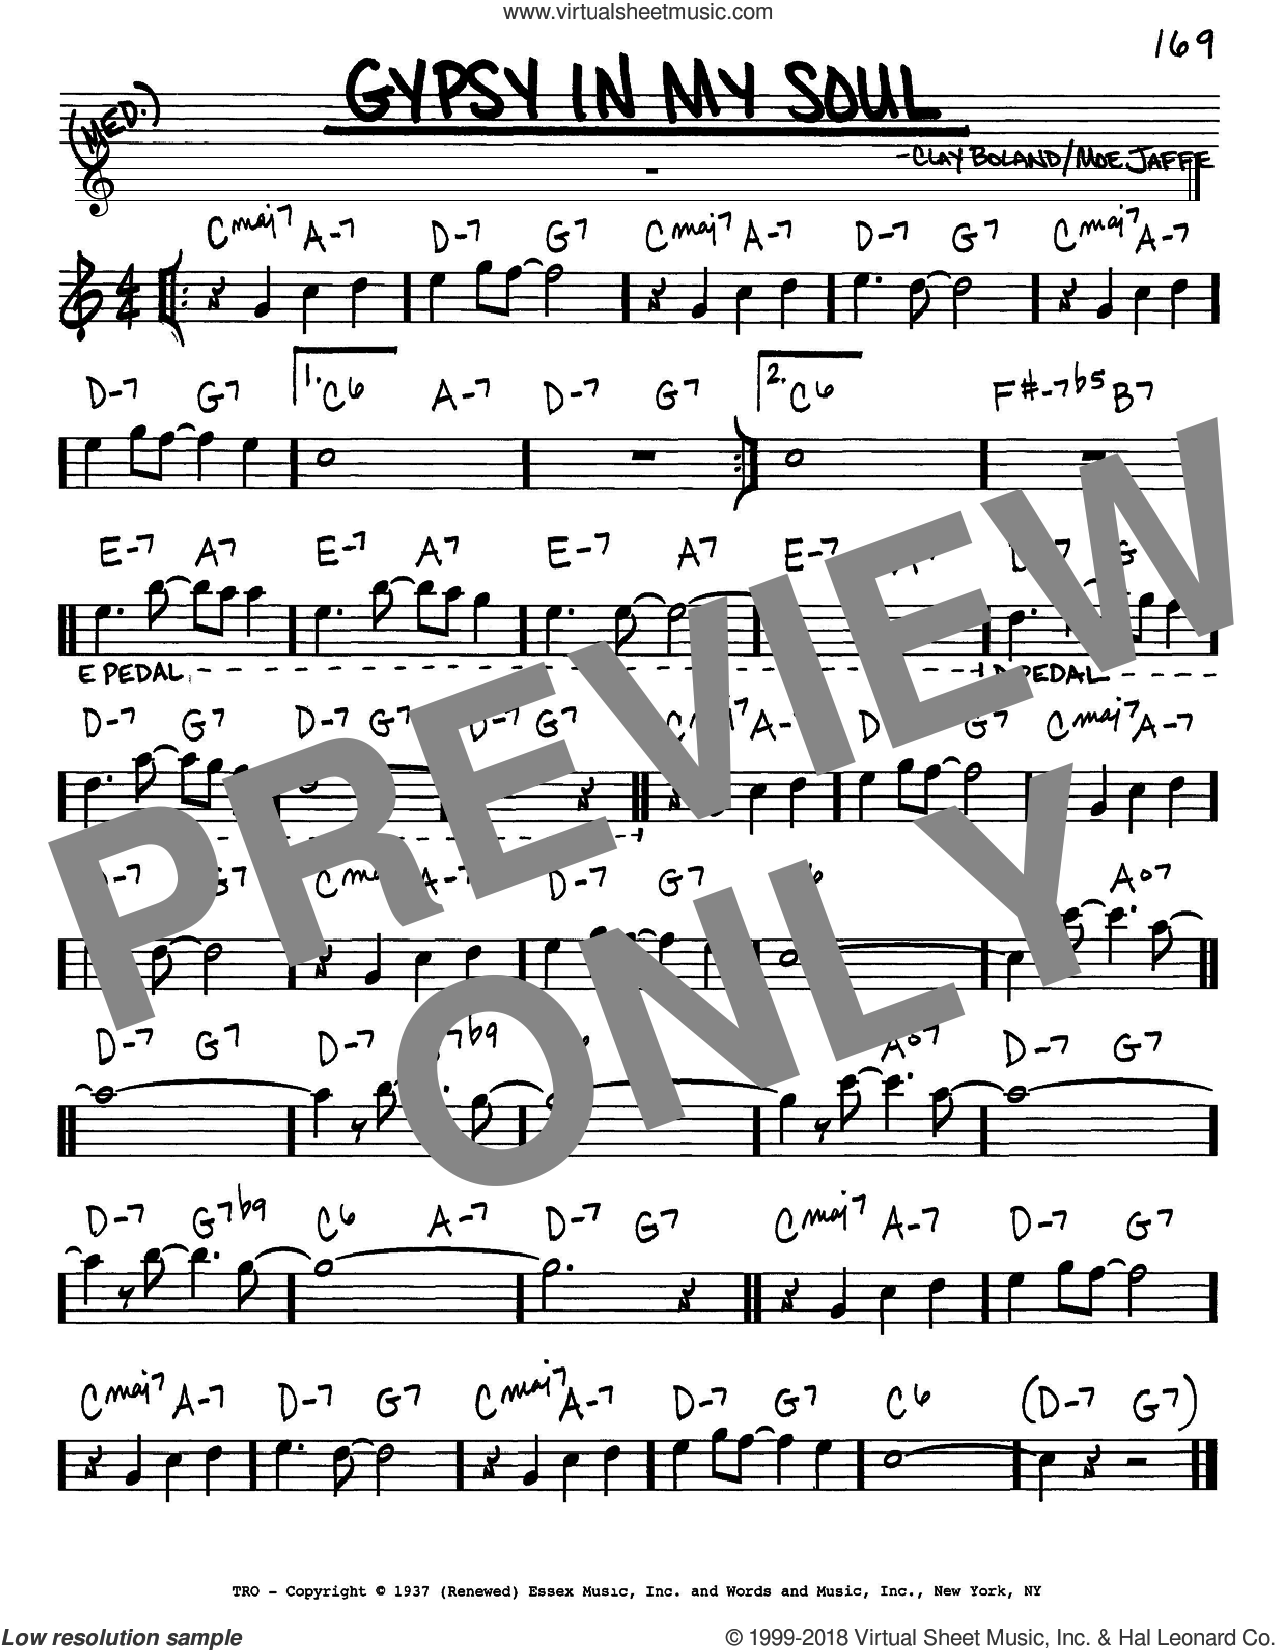 Gypsy In My Soul sheet music for voice and other instruments (in Eb) by Moe Jaffe and Clay Boland, intermediate skill level